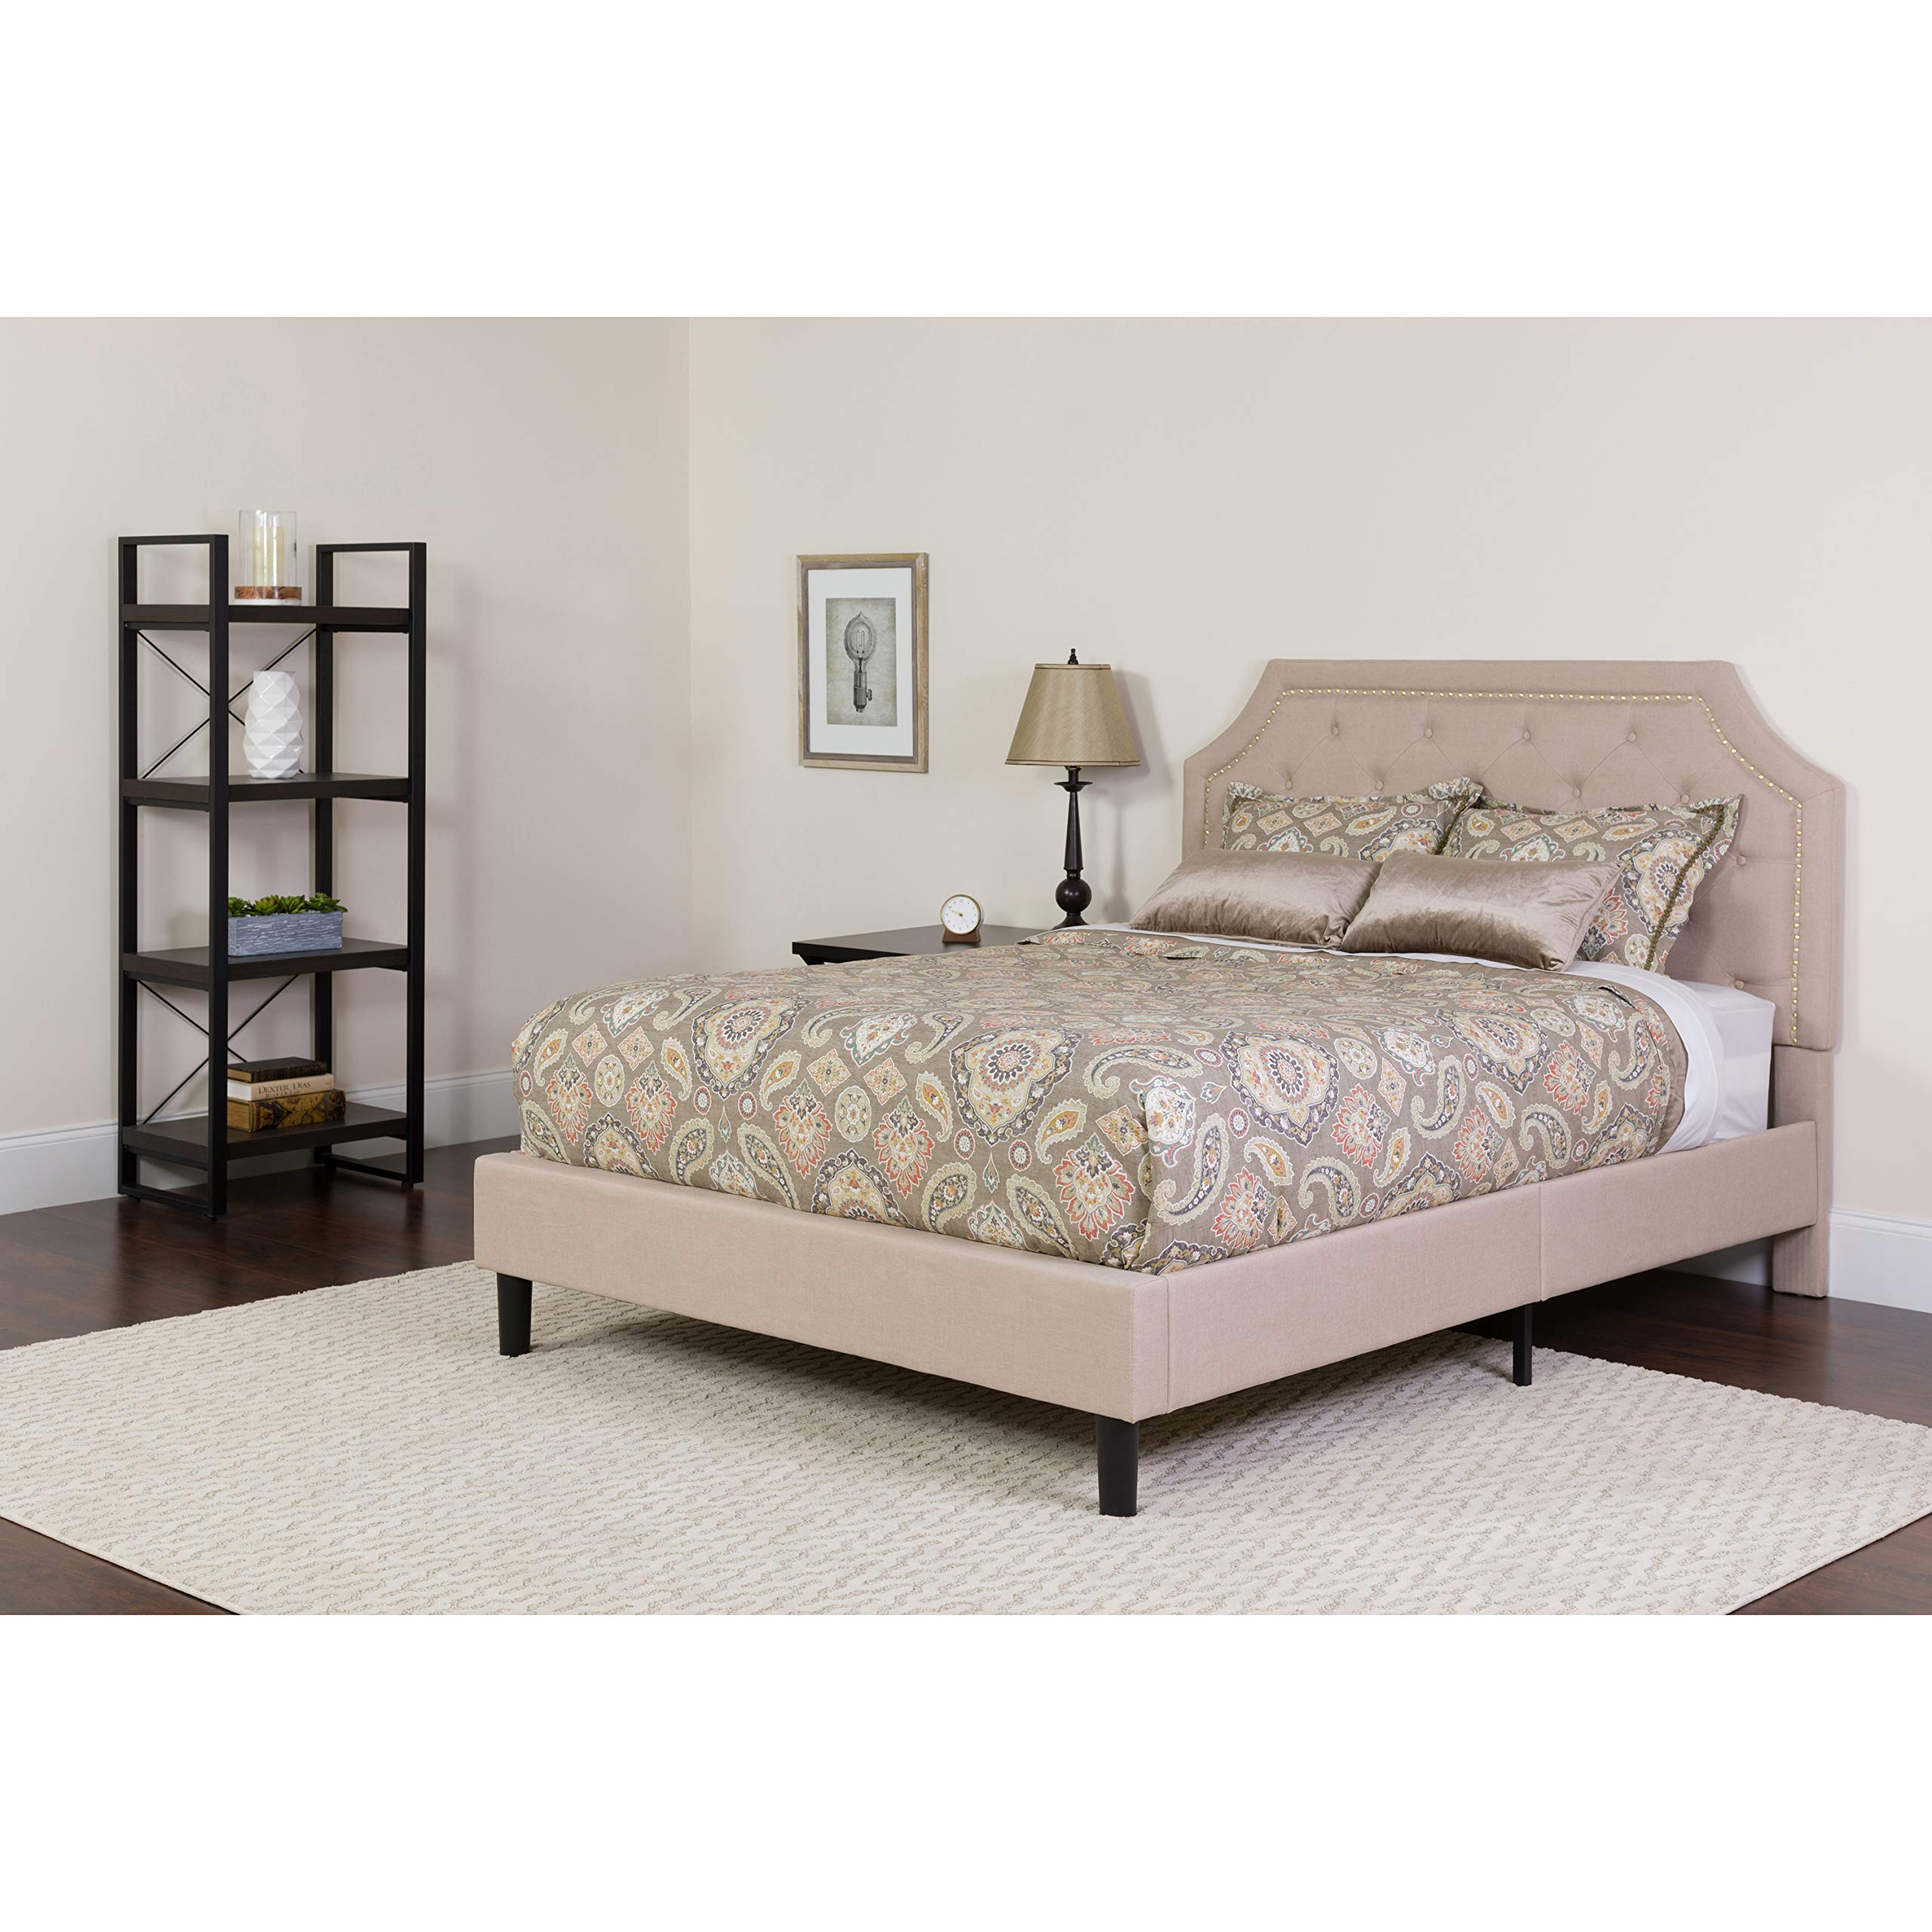 Flash Furniture Brighton King Size Tufted Upholstered Platform Bed in Beige Fabric by Flash Furniture